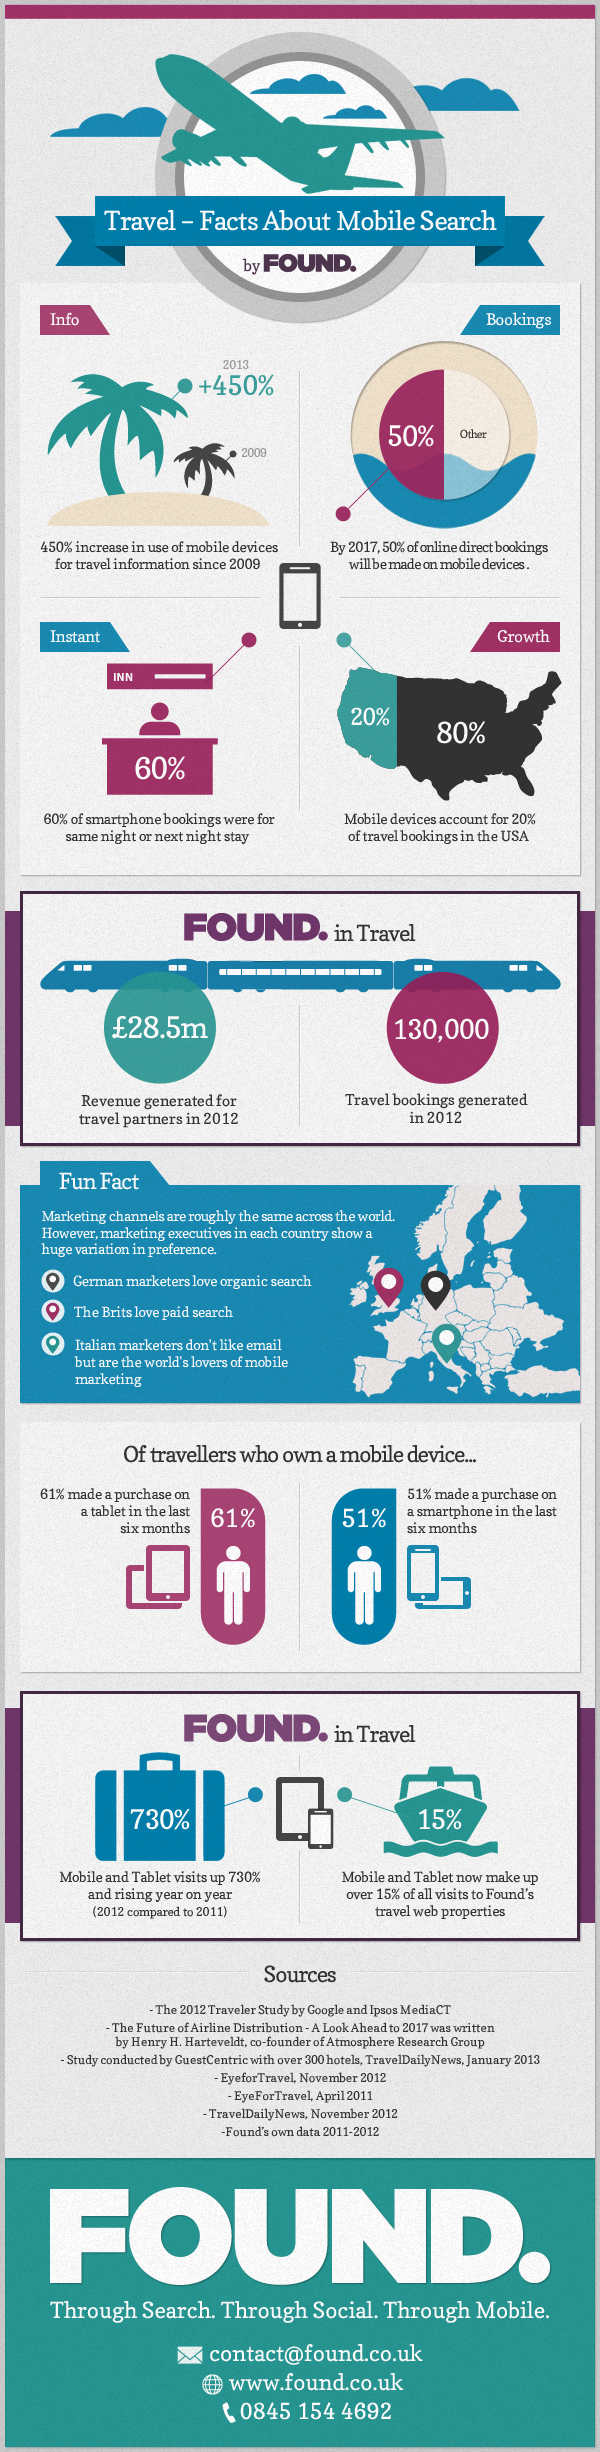 Travel - Facts about Mobile Search [Infographic]